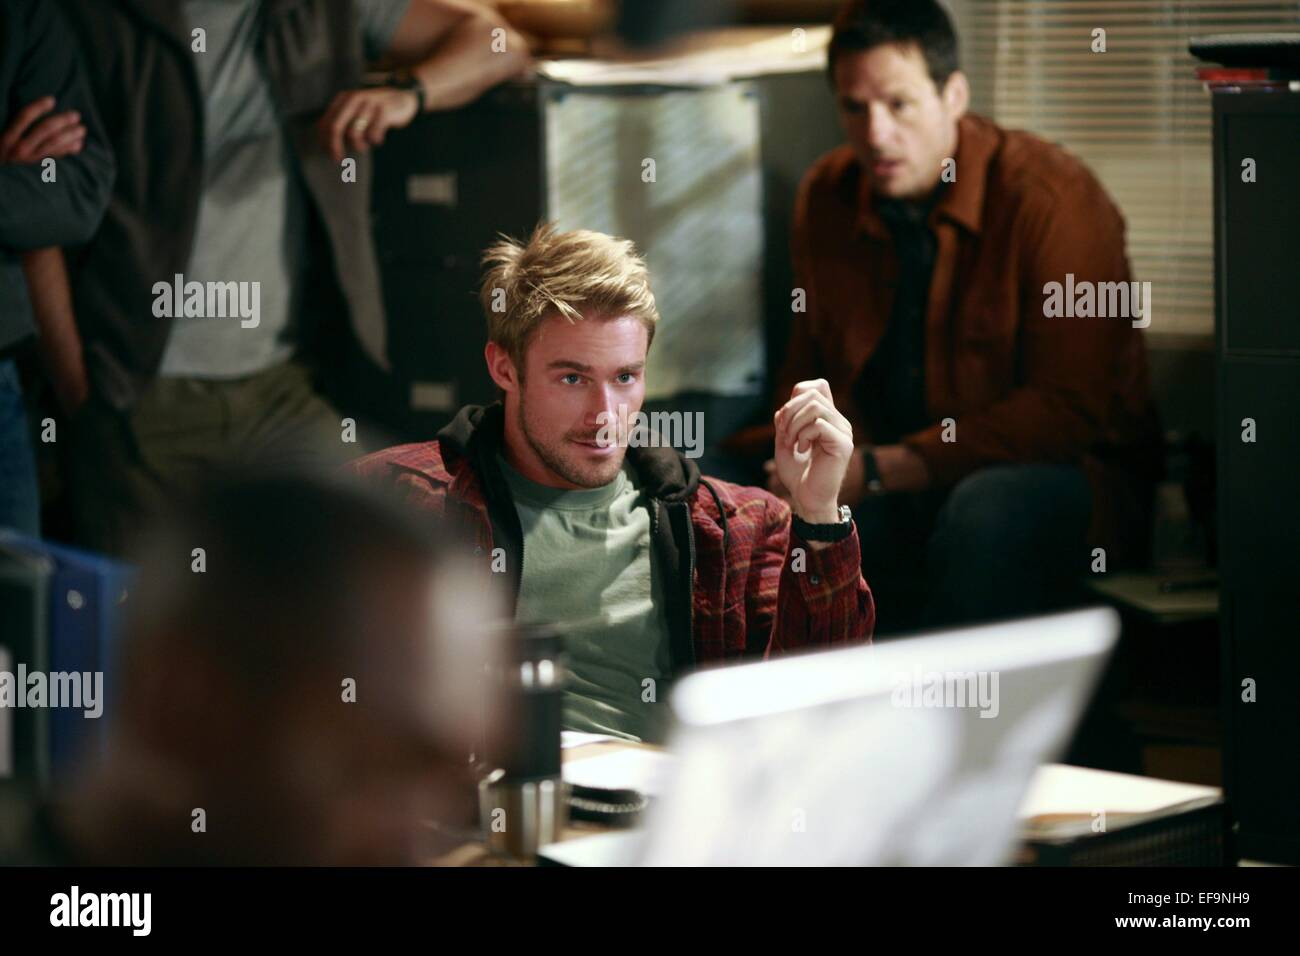 JESSIE PAVELKA 12 MEN OF CHRISTMAS (2009 Stock Photo: 78275829 - Alamy